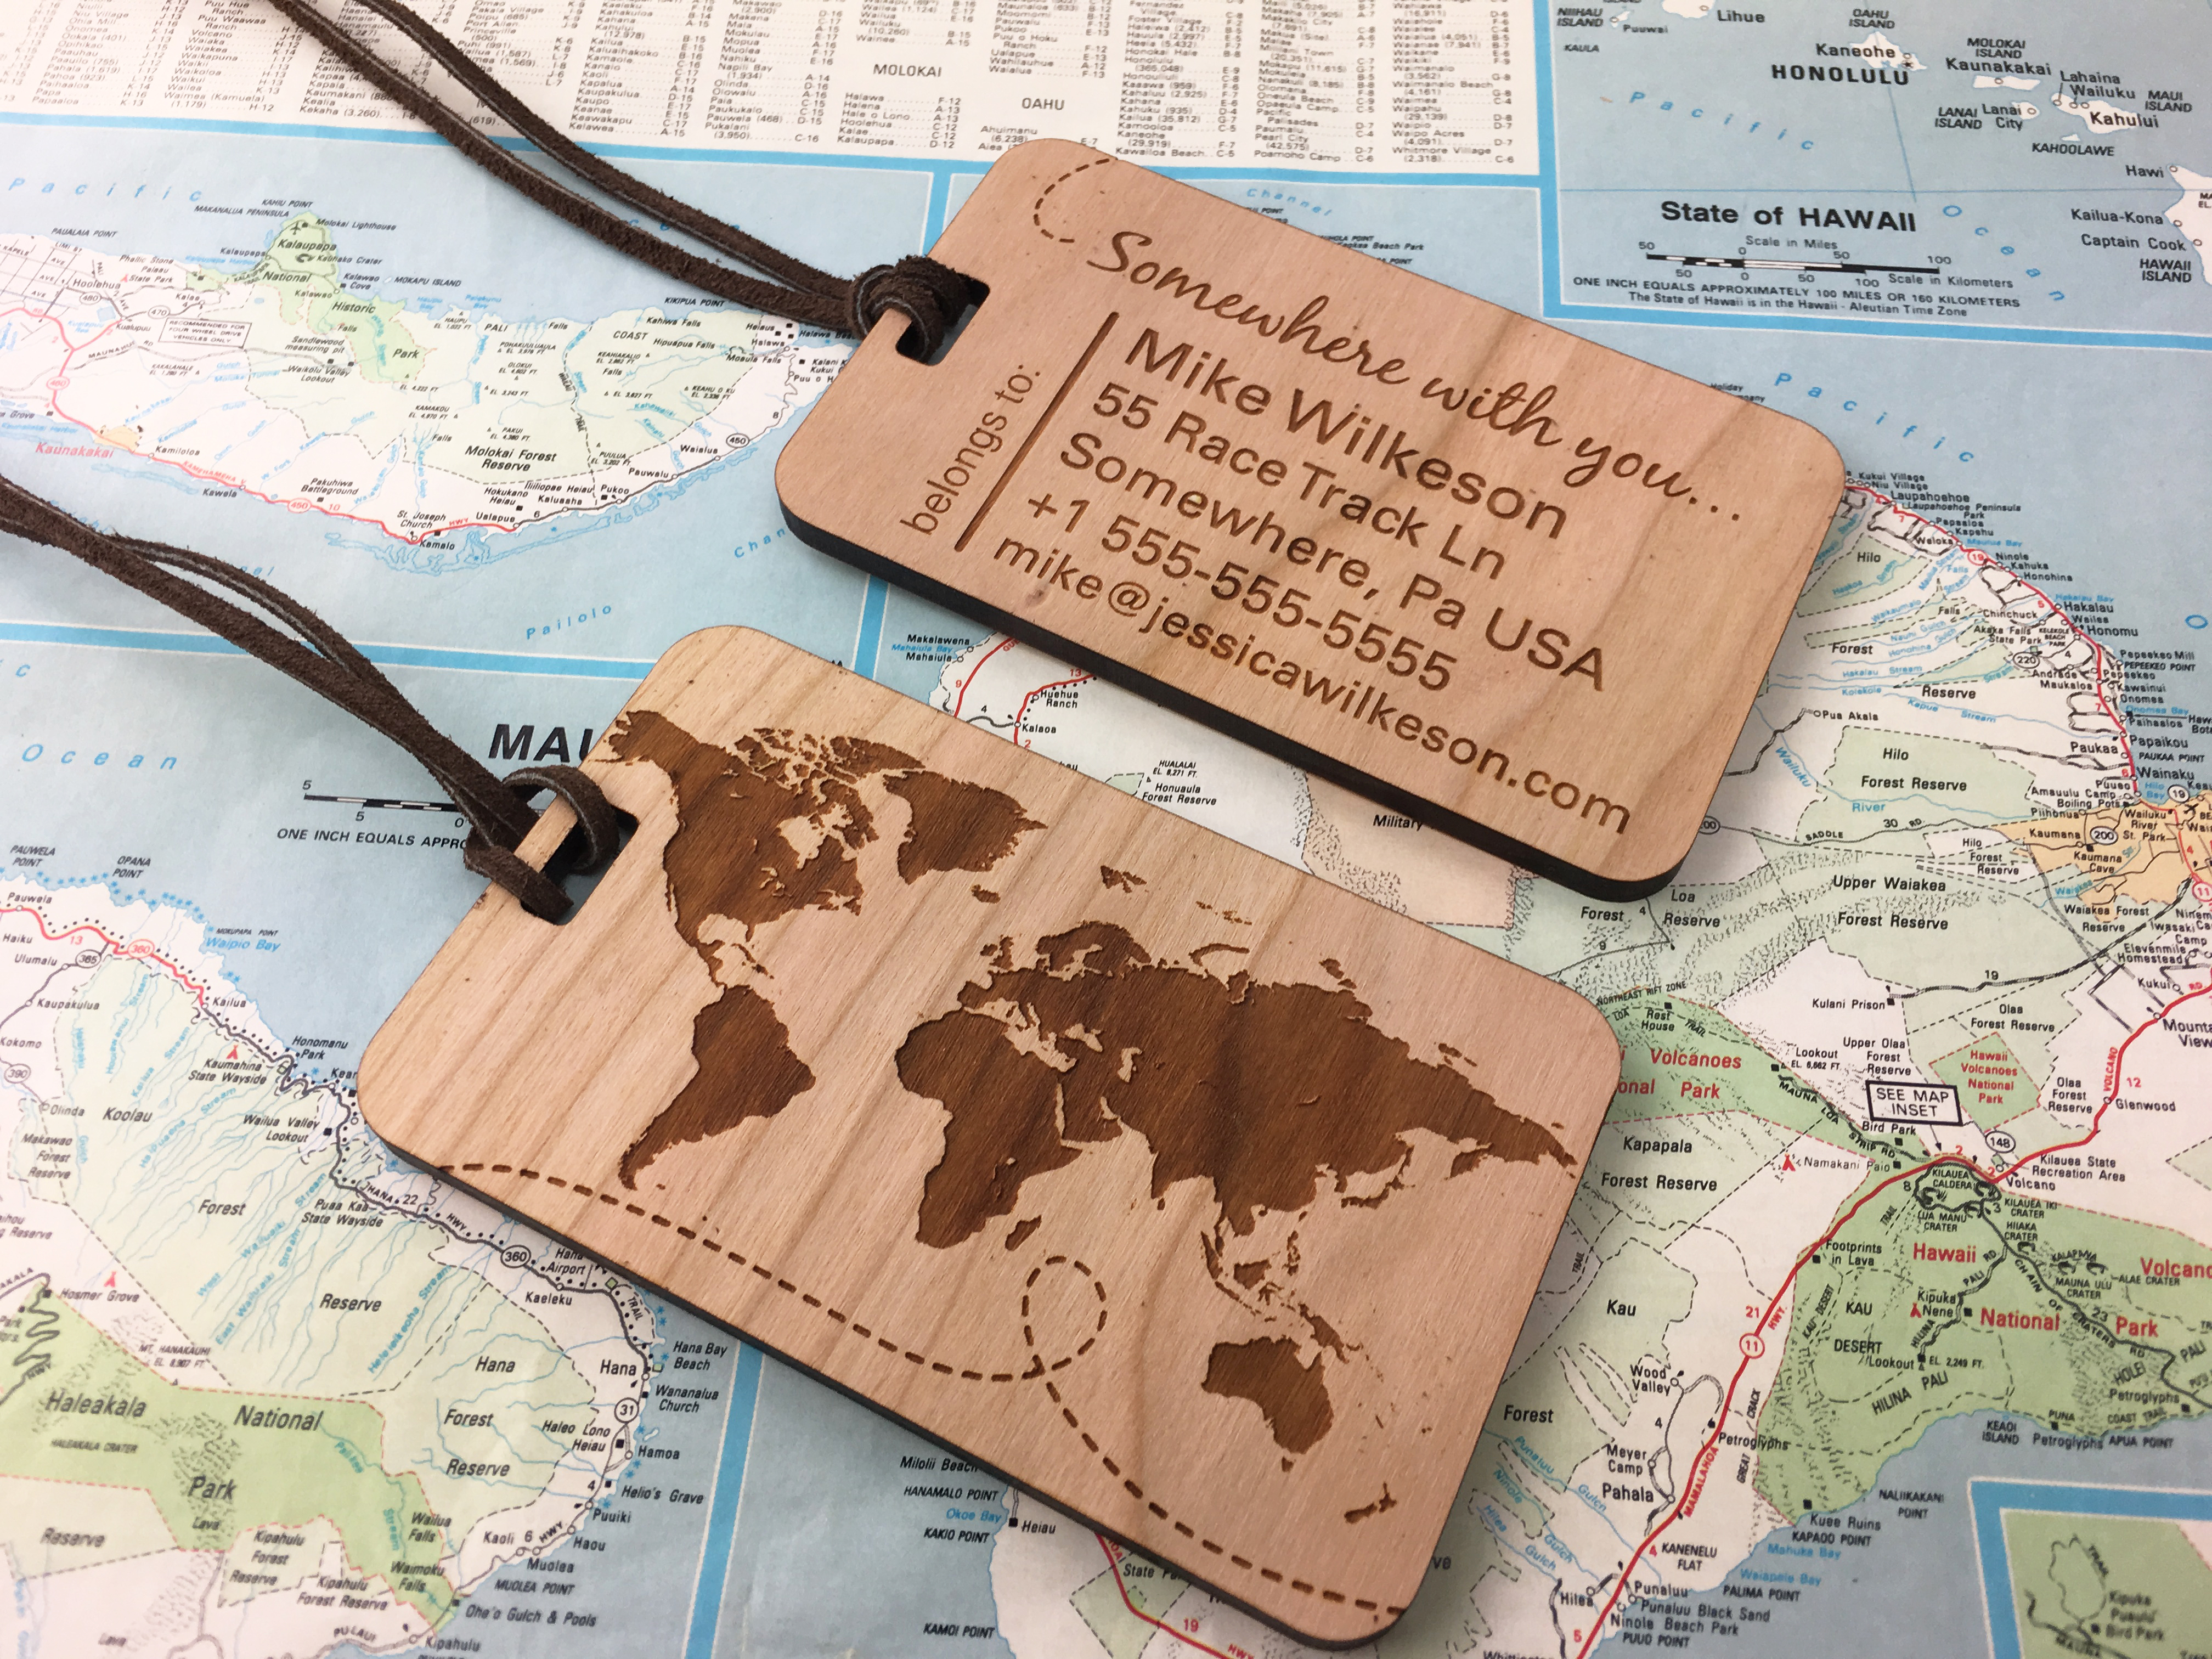 5th anniversary wood luggage tags